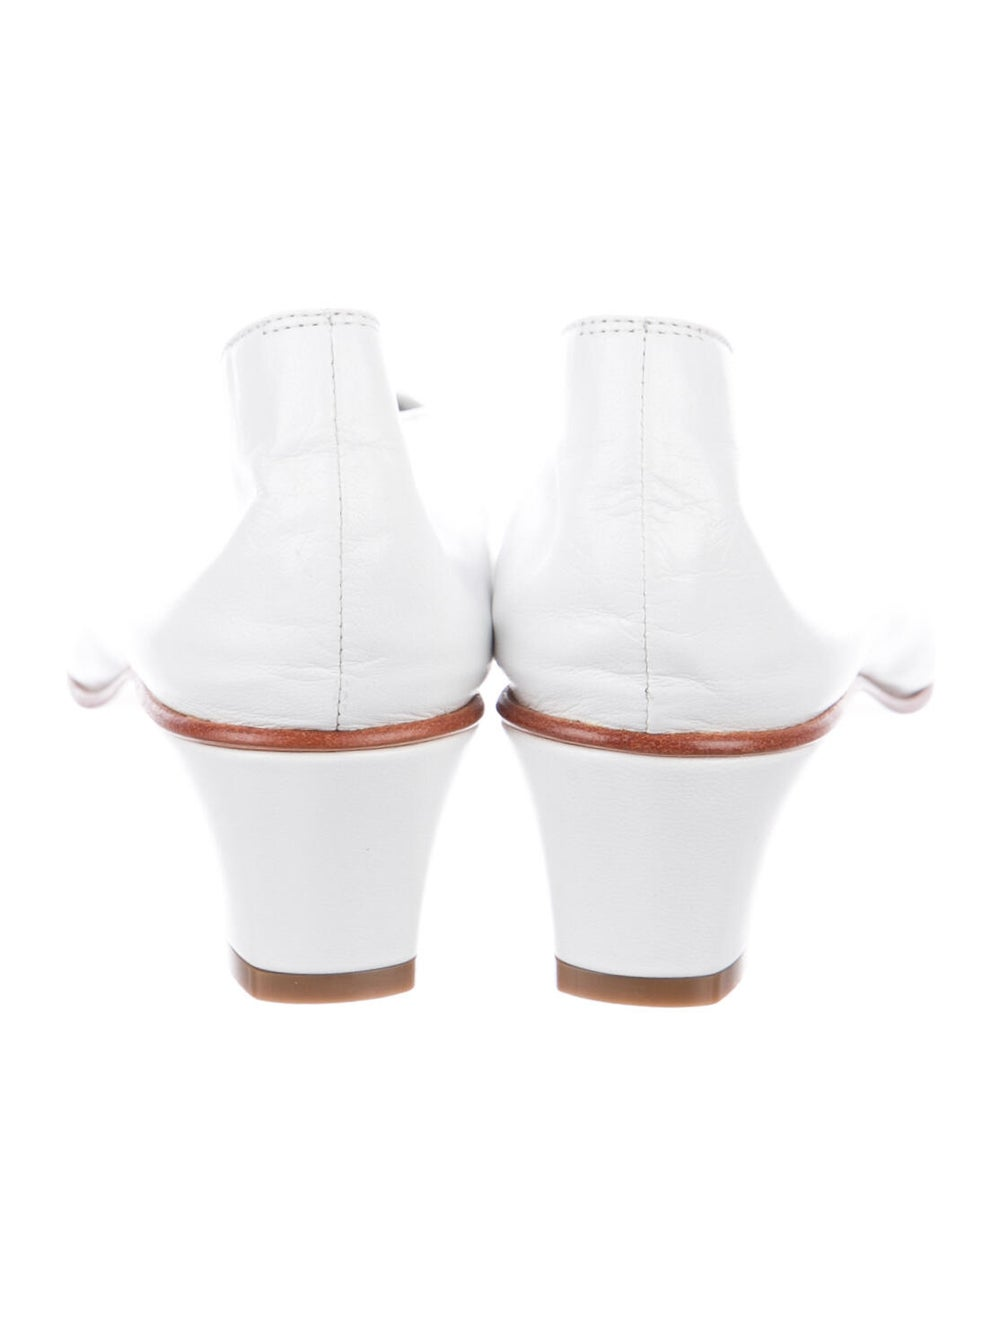 Martiniano Leather Pumps White - image 4